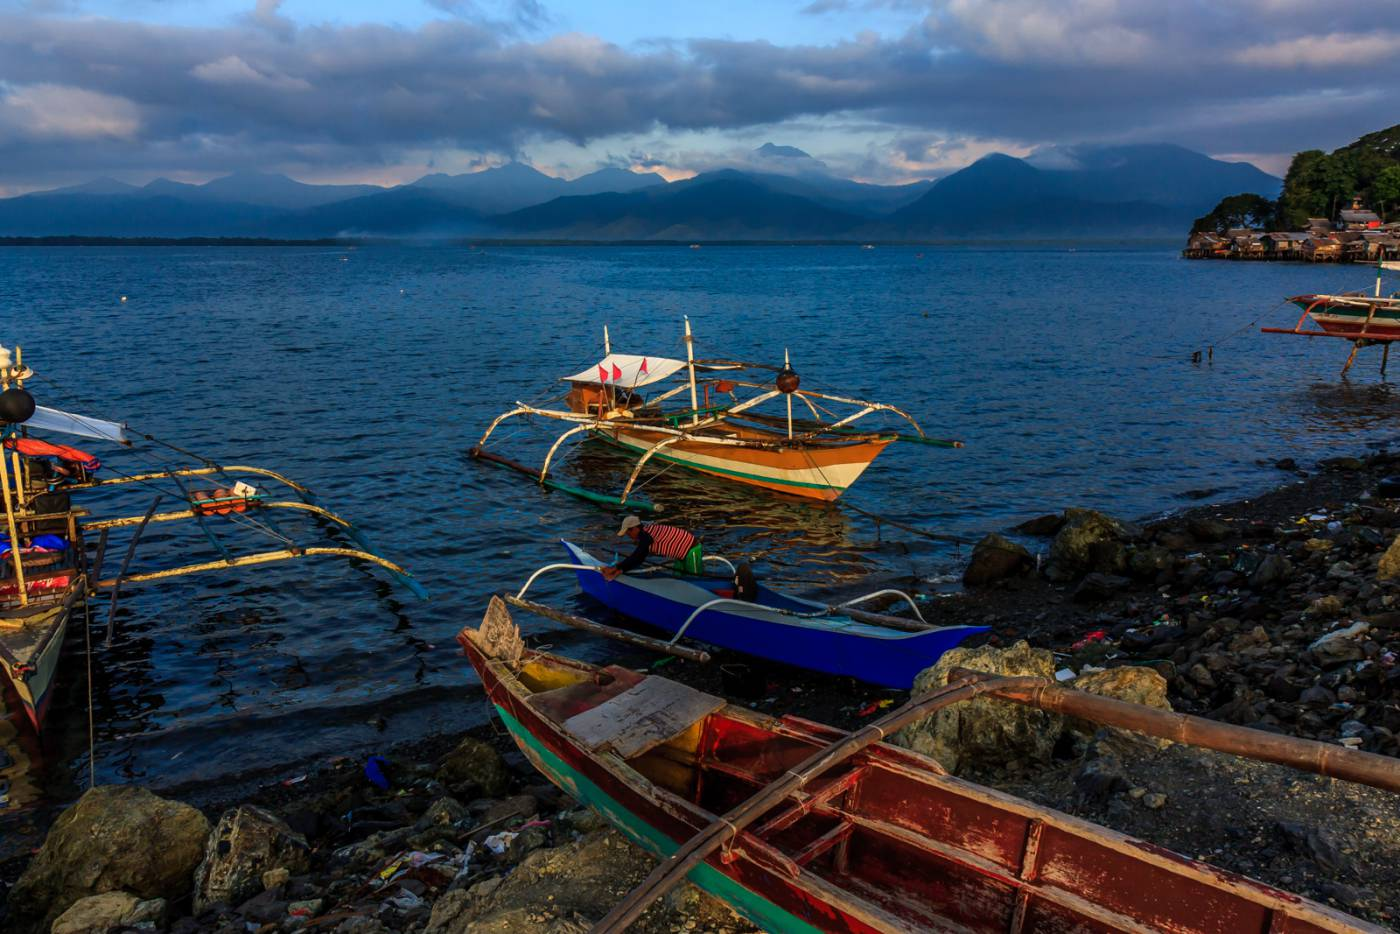 Fishing boats in the bay.